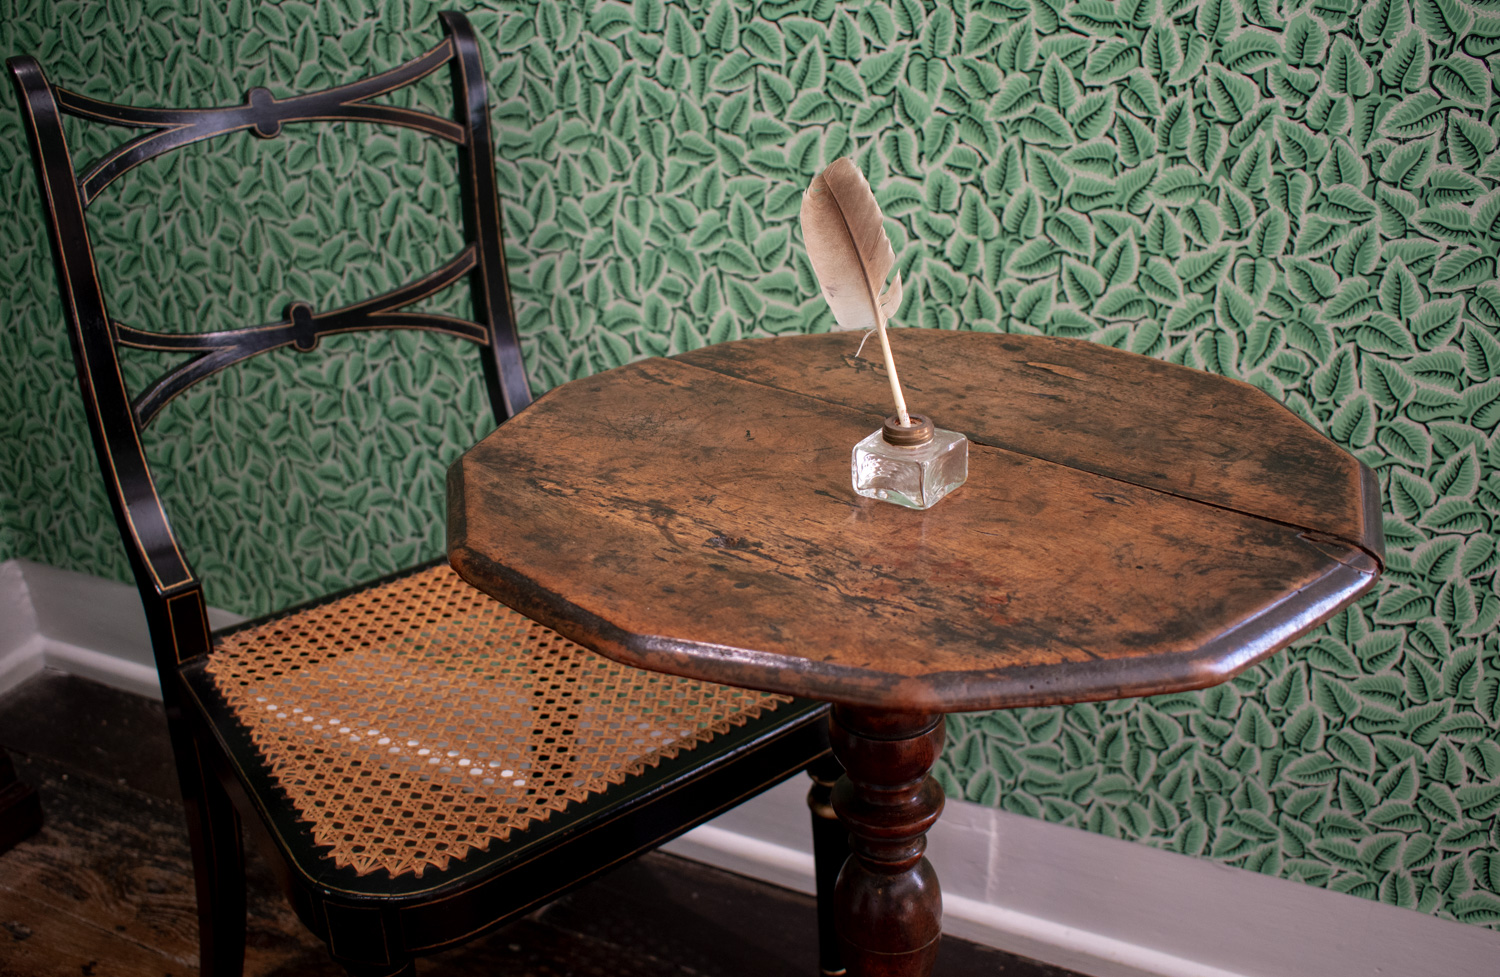 Jane Austen's writing table seen in the Dining Room at Jane Austen's House